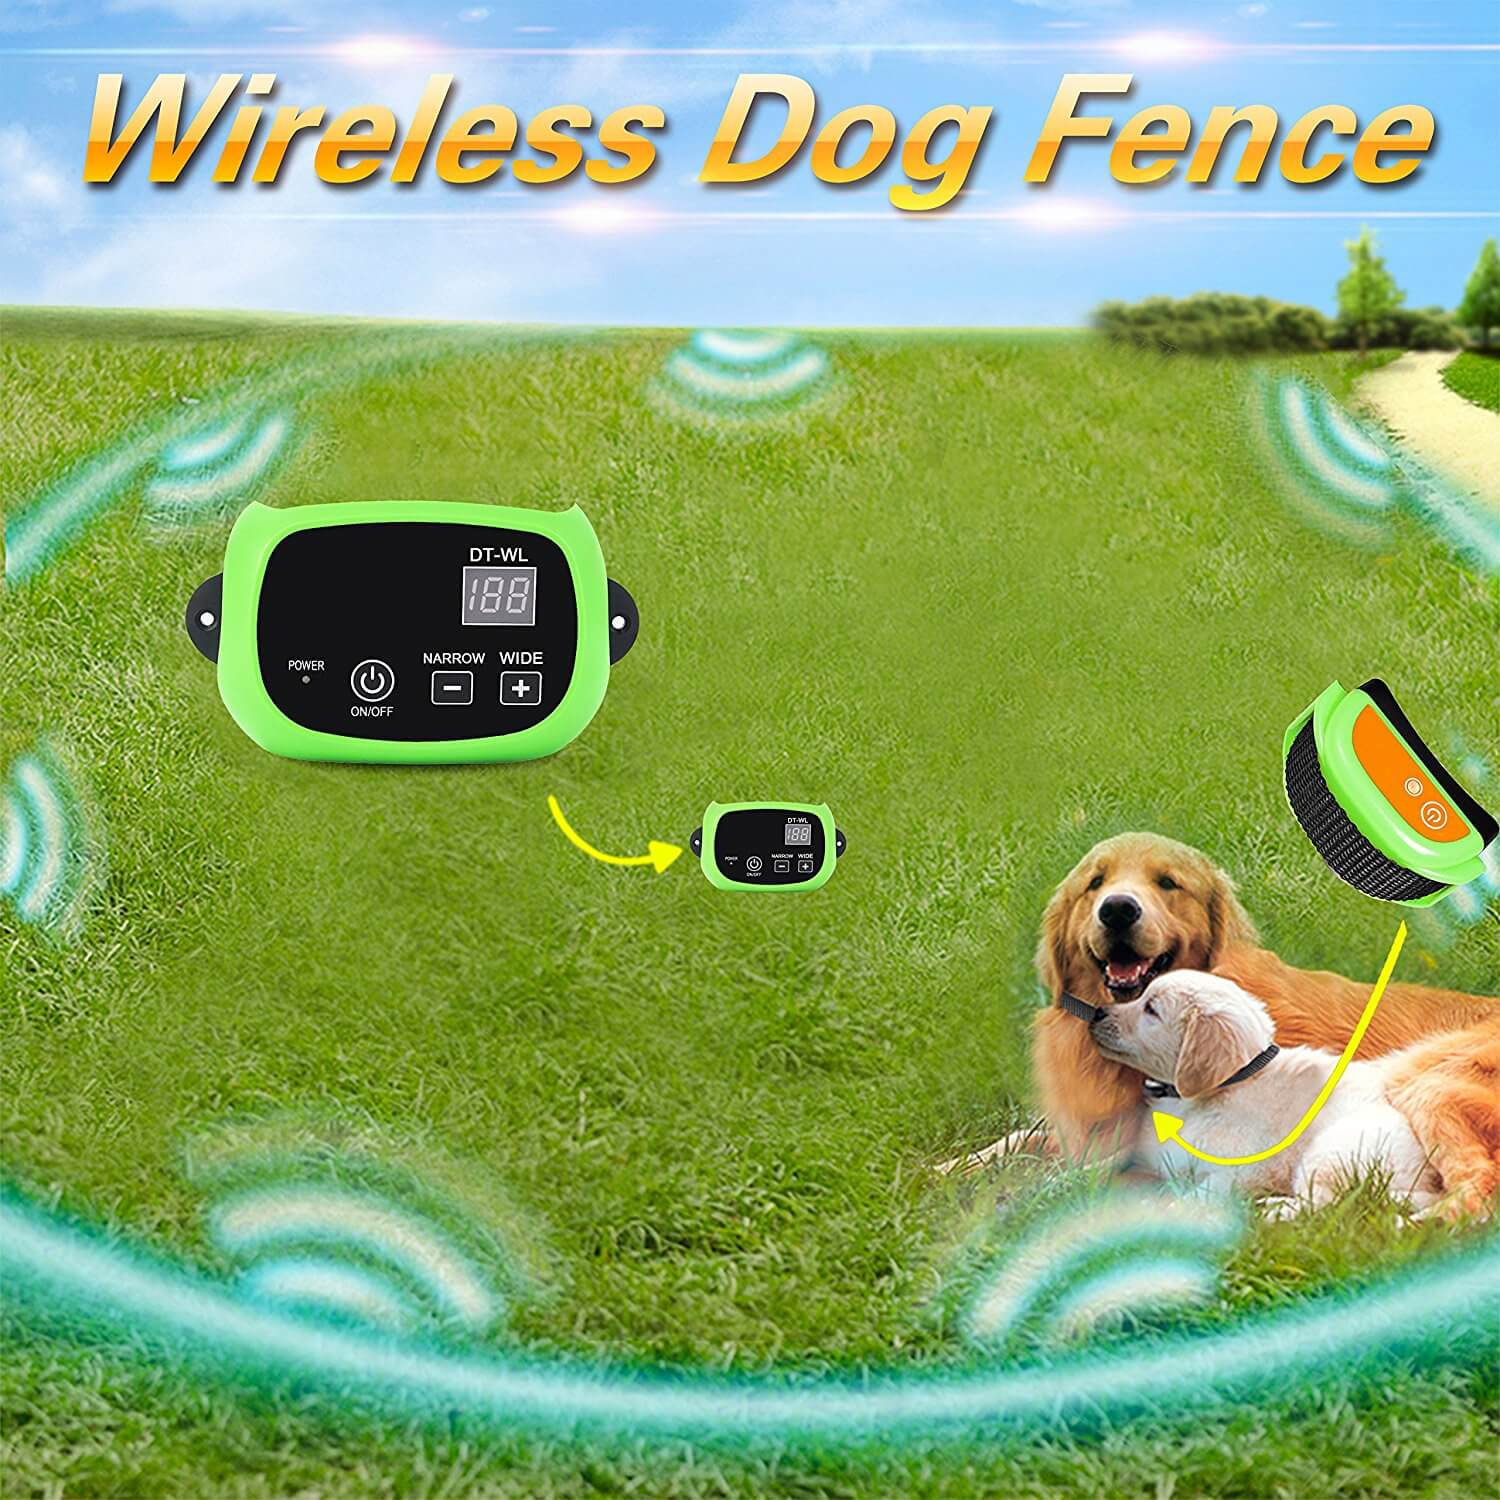 petfender wireless dog fence for home and field usage